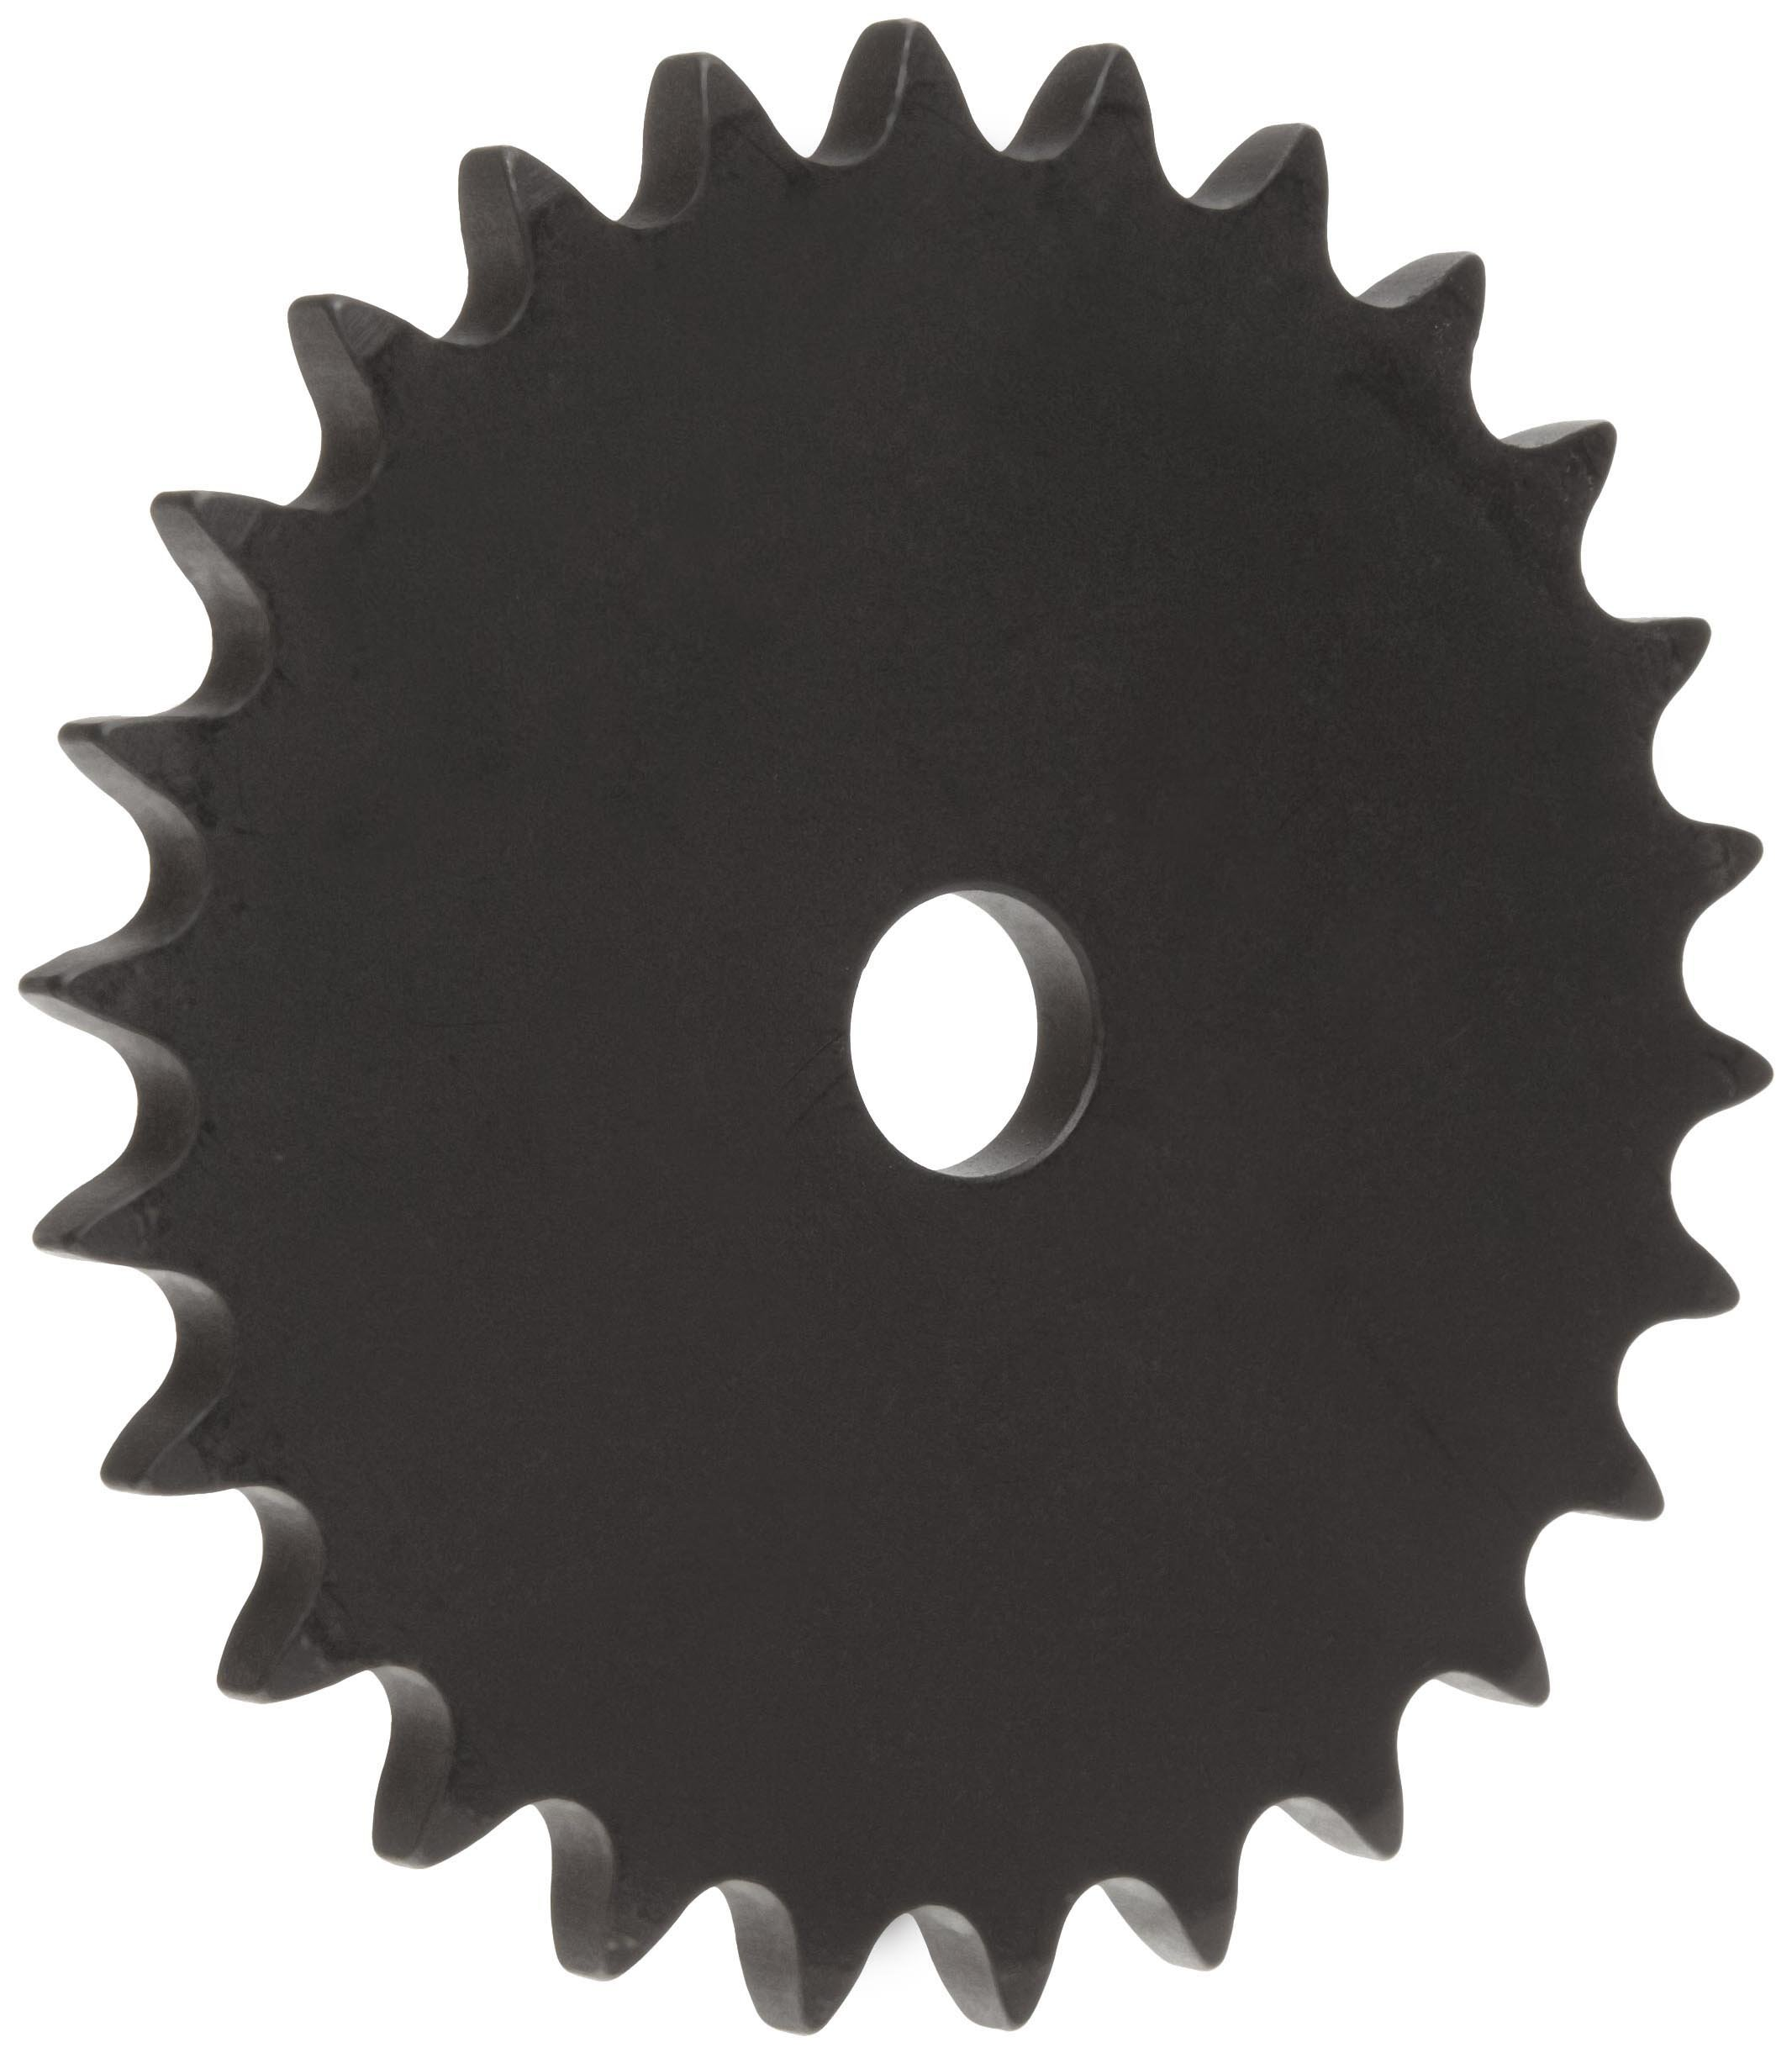 Martin Roller Chain Sprocket, Reboreable, Type A Hub, Single Strand, 40 Chain Size, 0.5'' Pitch, 60 Teeth, 0.719'' Bore Dia, 9.84'' OD, 0.284'' Width